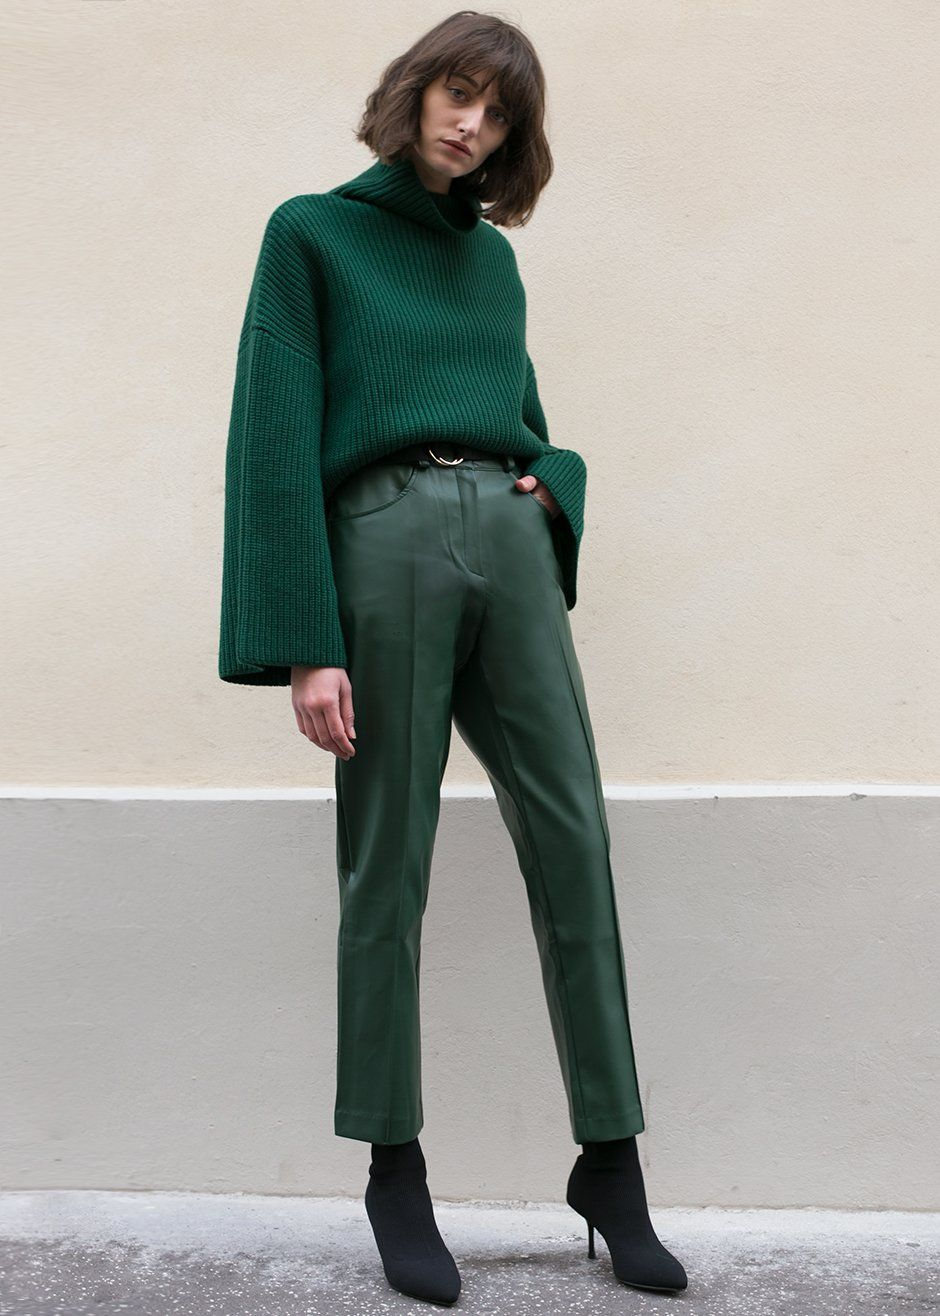 06ab0db71f0be Green Vegan Leather Pants – The Frankie Shop Fashion leather articles at 60  % wholesale discount prices #leather #leatherjacket #leatherfashion